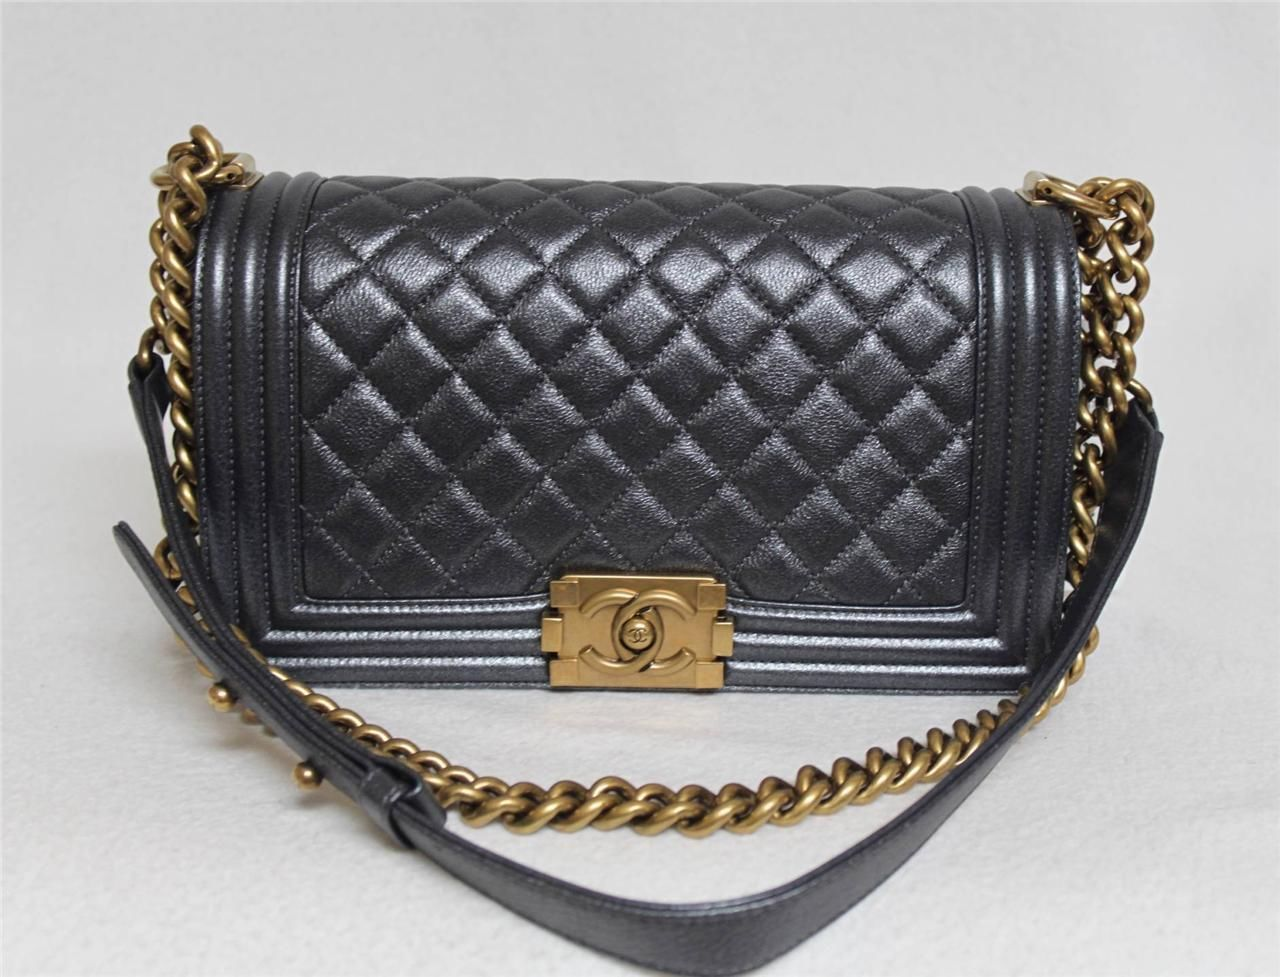 New chanel old medium le boy metallic charcol dk grey leather gold hardware bag